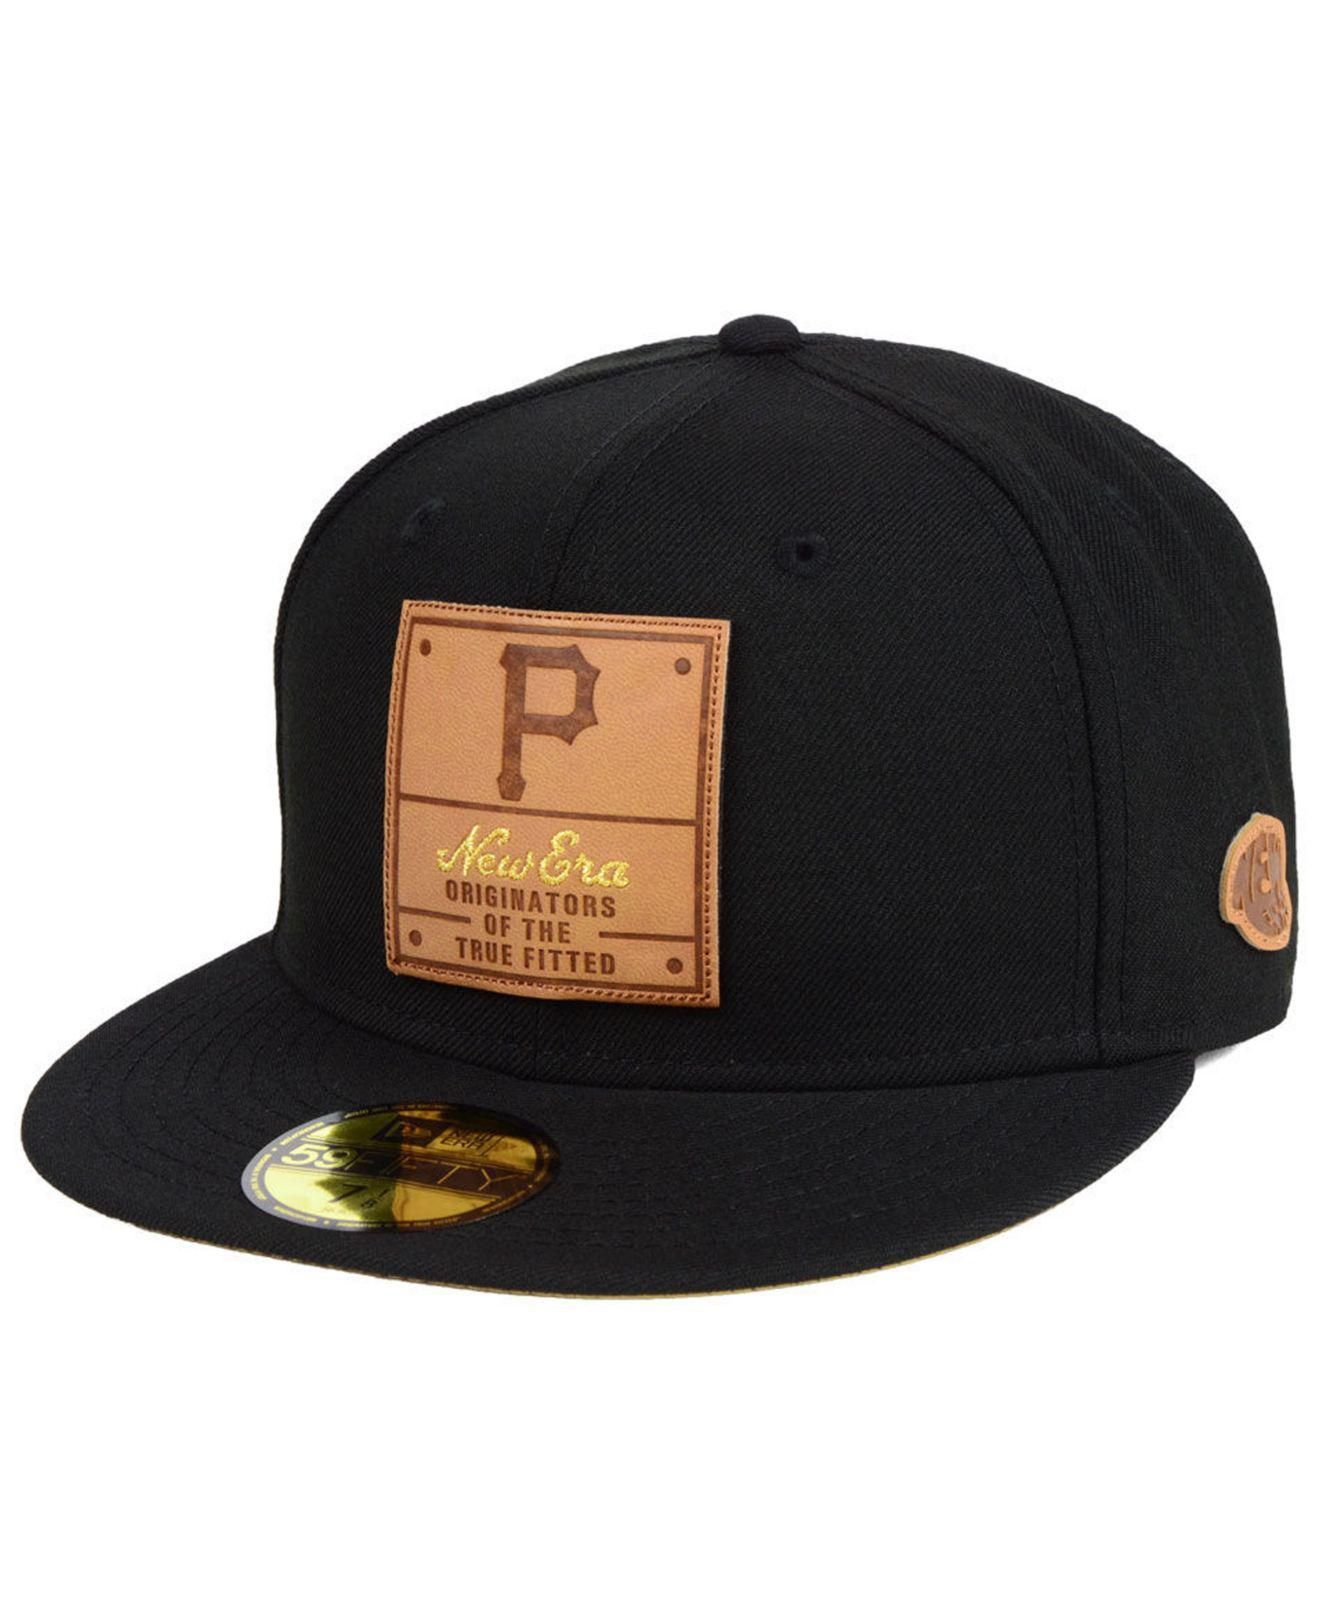 b099ff8f92d Lyst - Ktz Pittsburgh Pirates Vintage Team Color 59fifty Fitted Cap ...